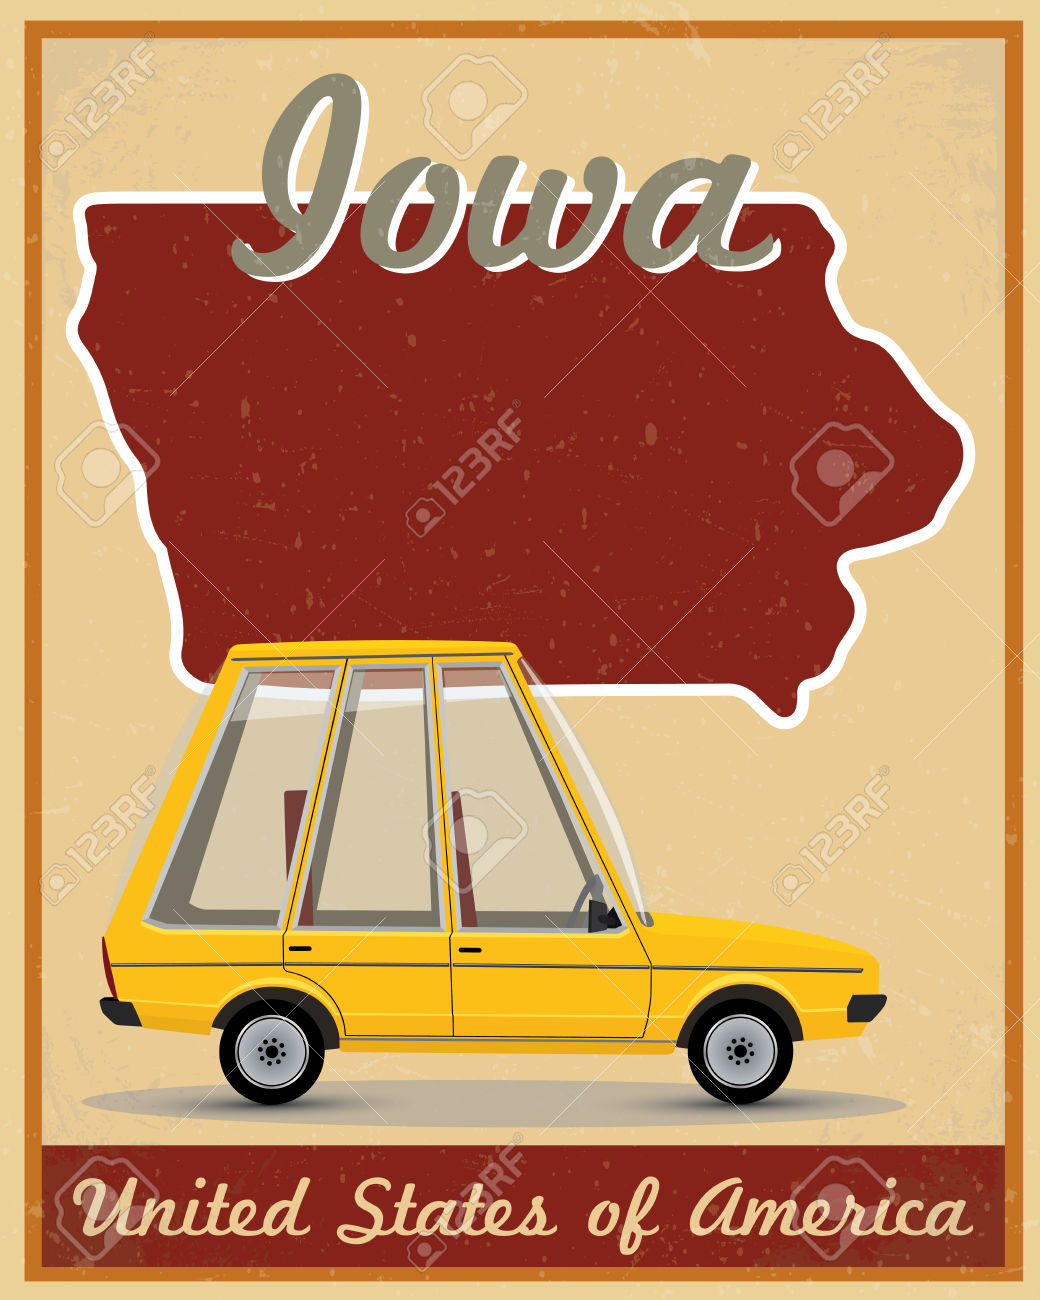 Road trip united states clipart vector royalty free download Iowa Road Trip Vintage Poster Royalty Free Cliparts, Vectors, And ... vector royalty free download